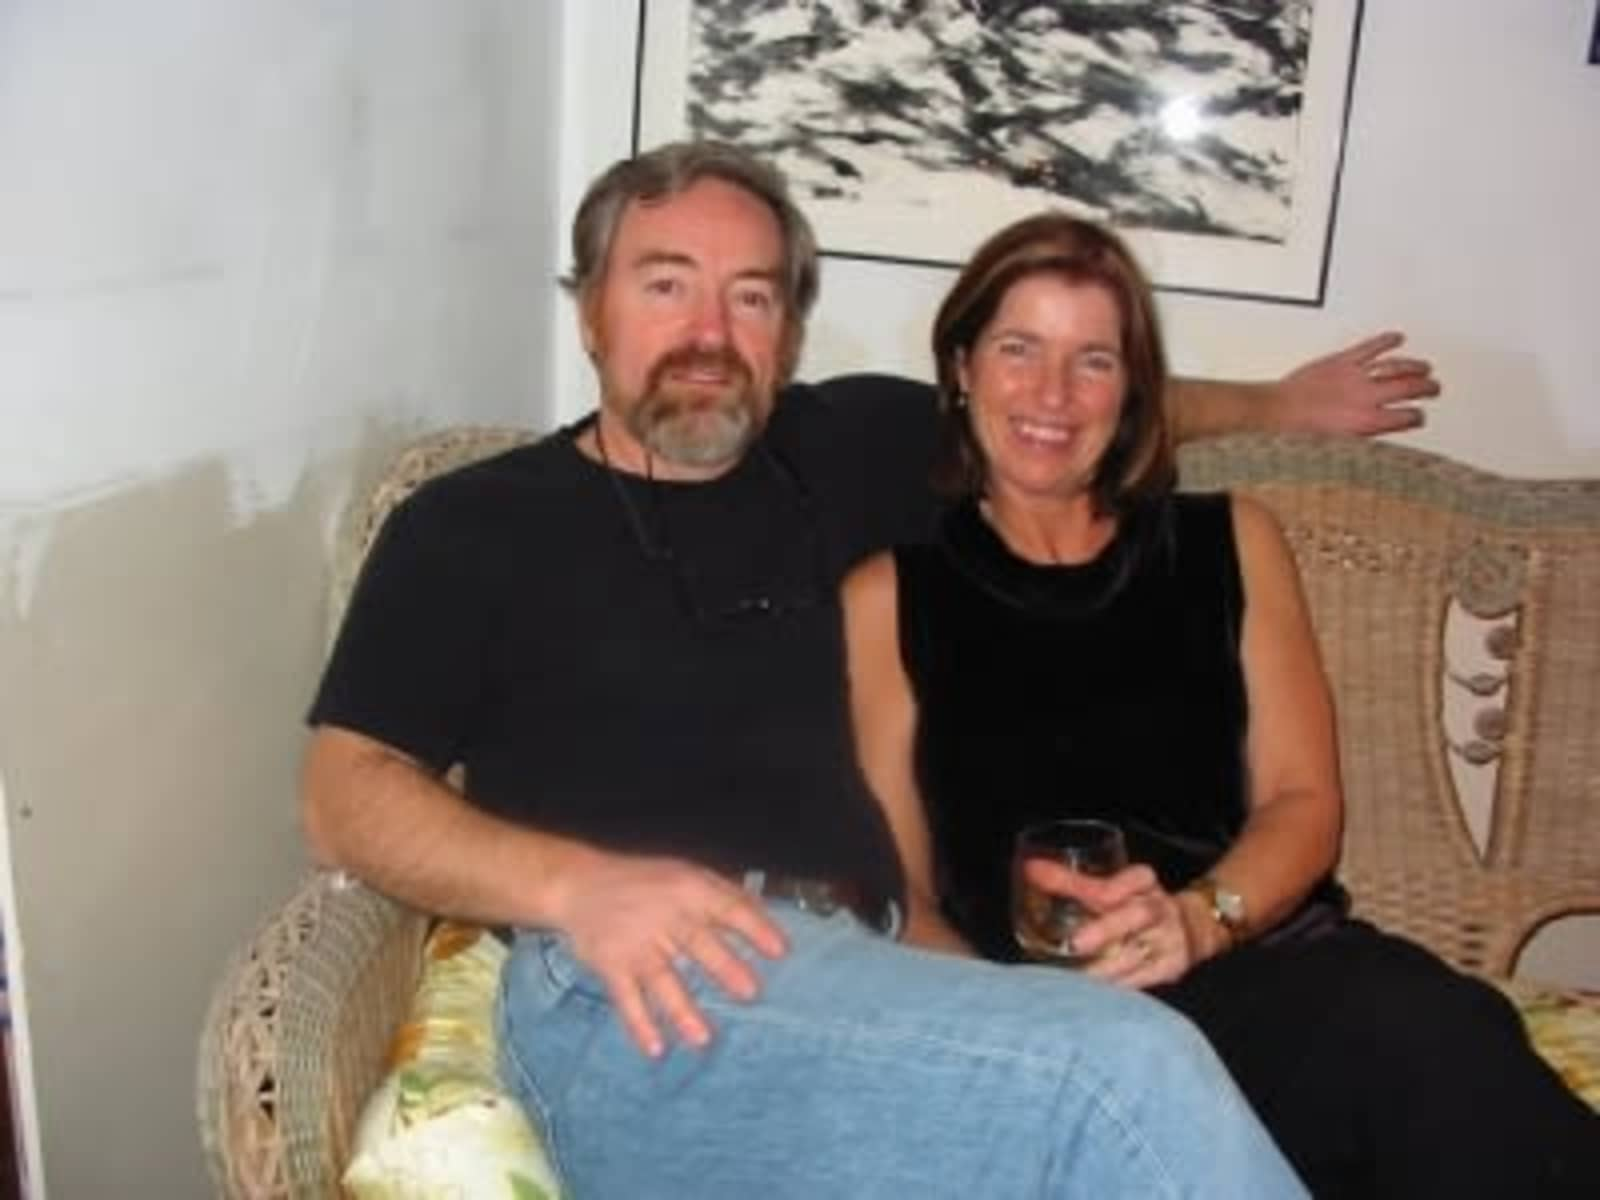 Kevin & Alicia from Belmont, Massachusetts, United States